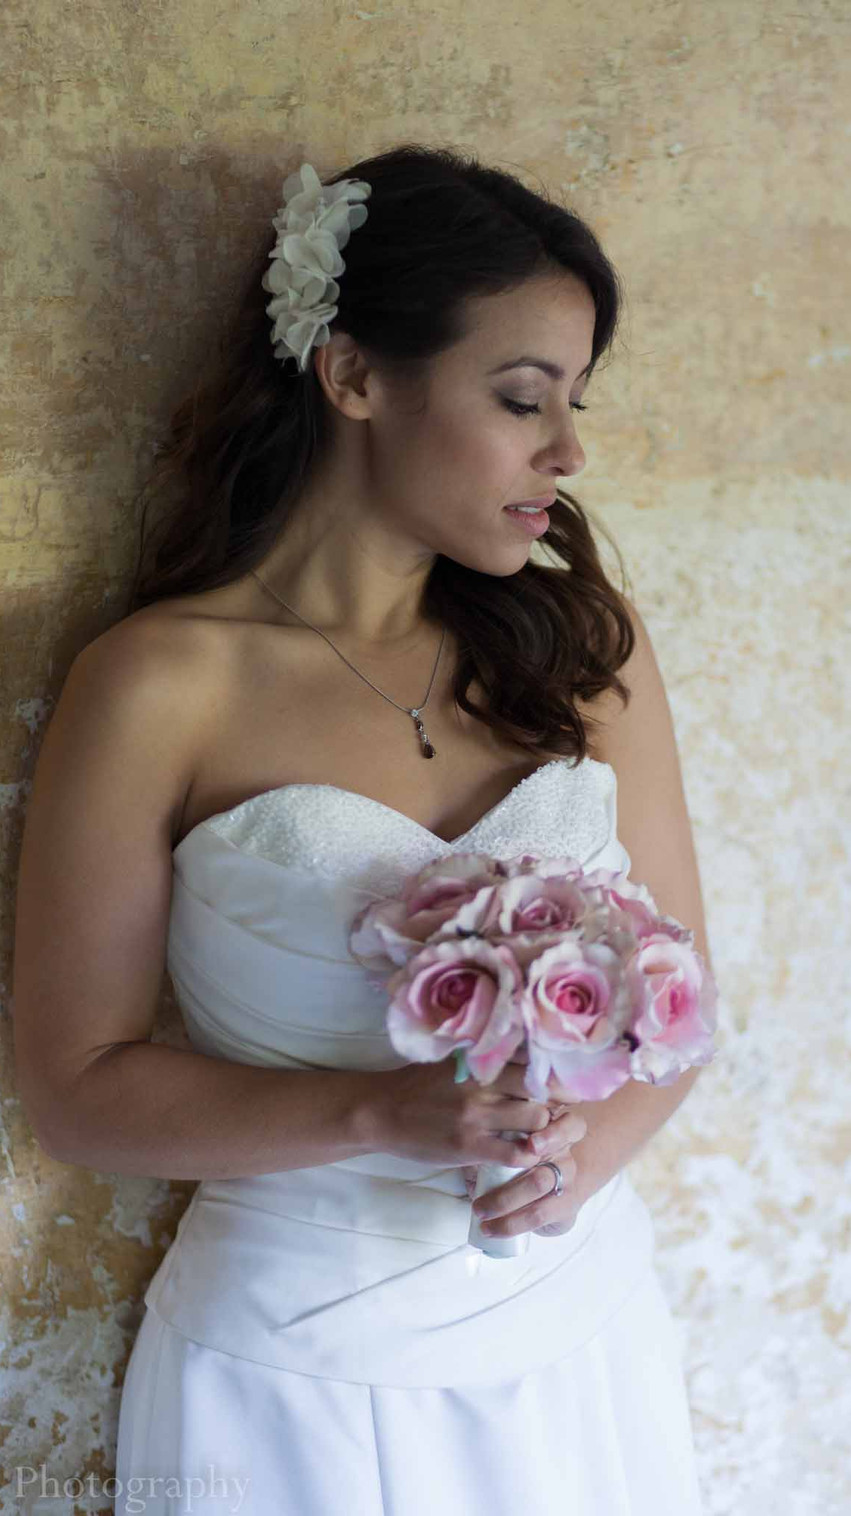 bride in her wedding dress against a yellow wall holding a bouquet of pink flowers